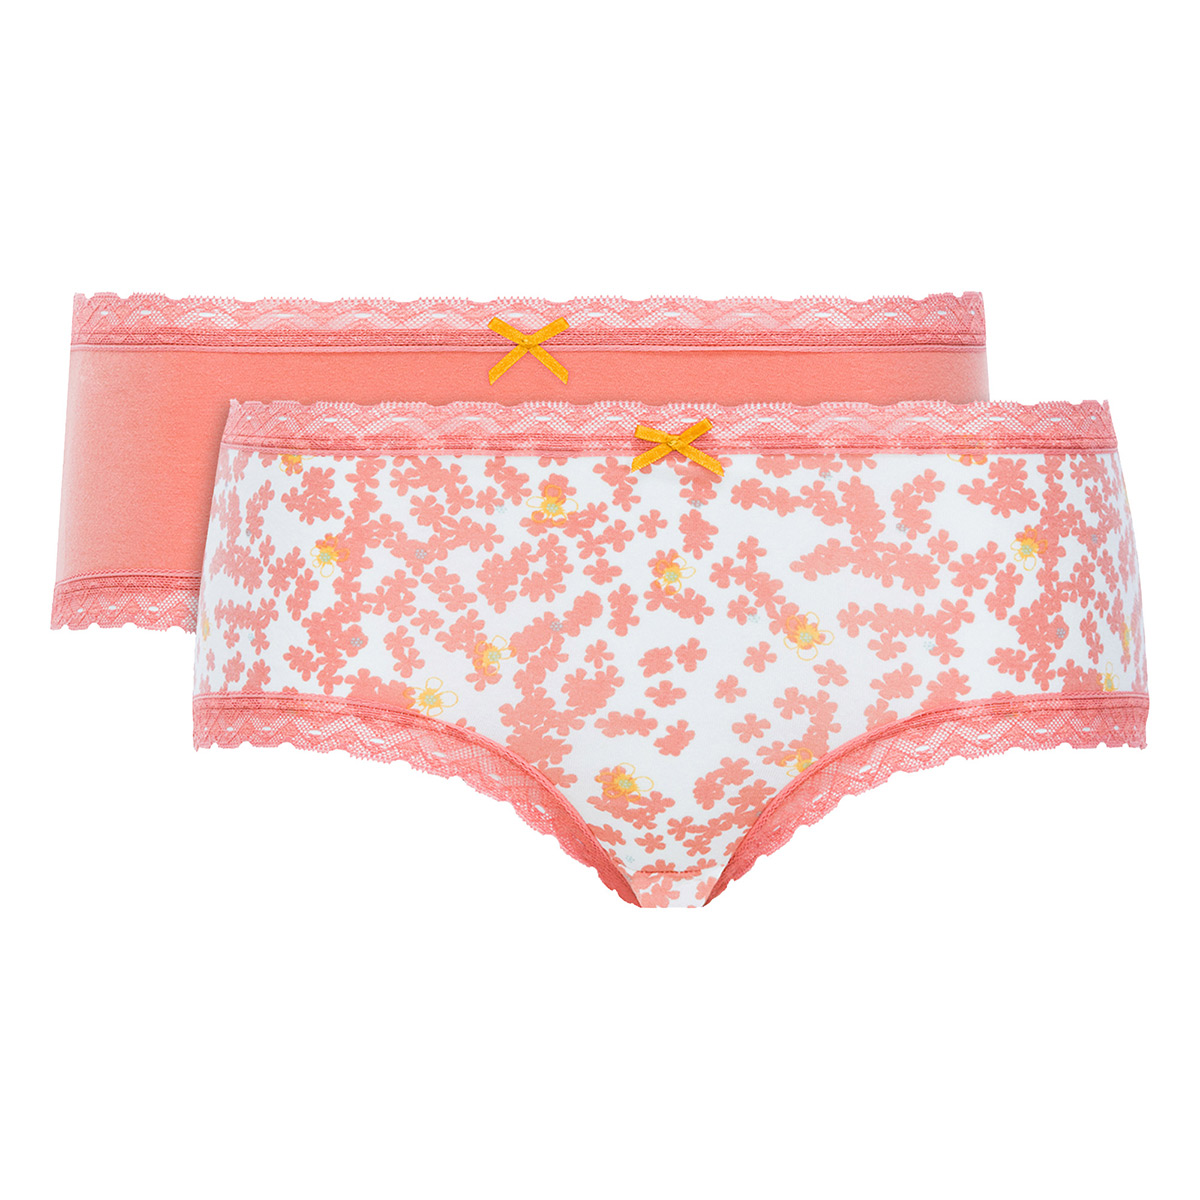 Lot de 2 boxers femme coton orange uni et imprimé - Basic Cotton Fancy, , DIM